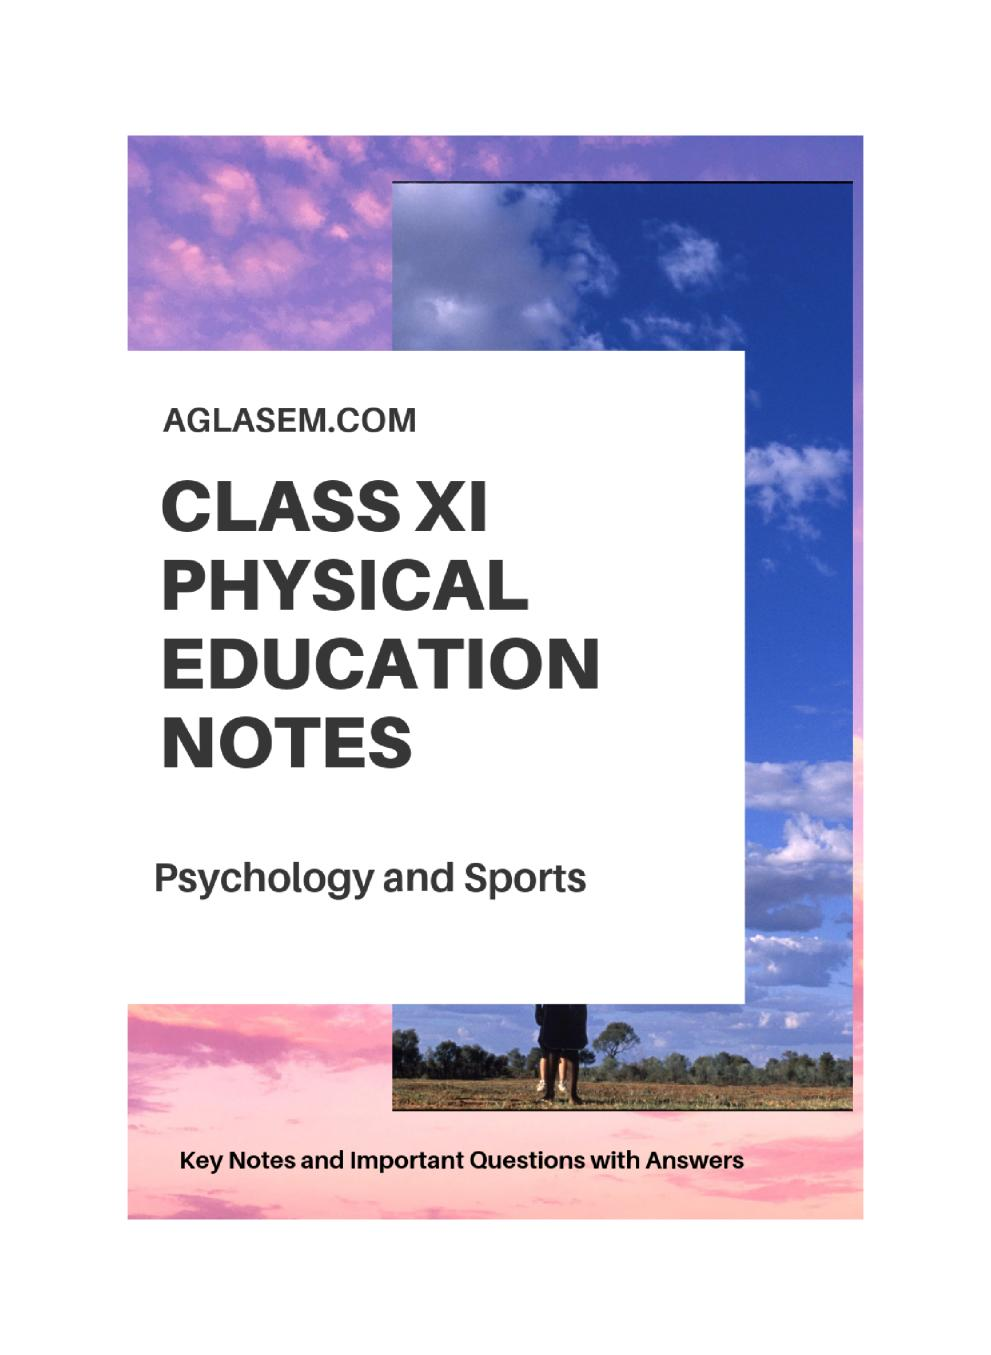 Class 11 Physical Education Notes For Psychology and Sports